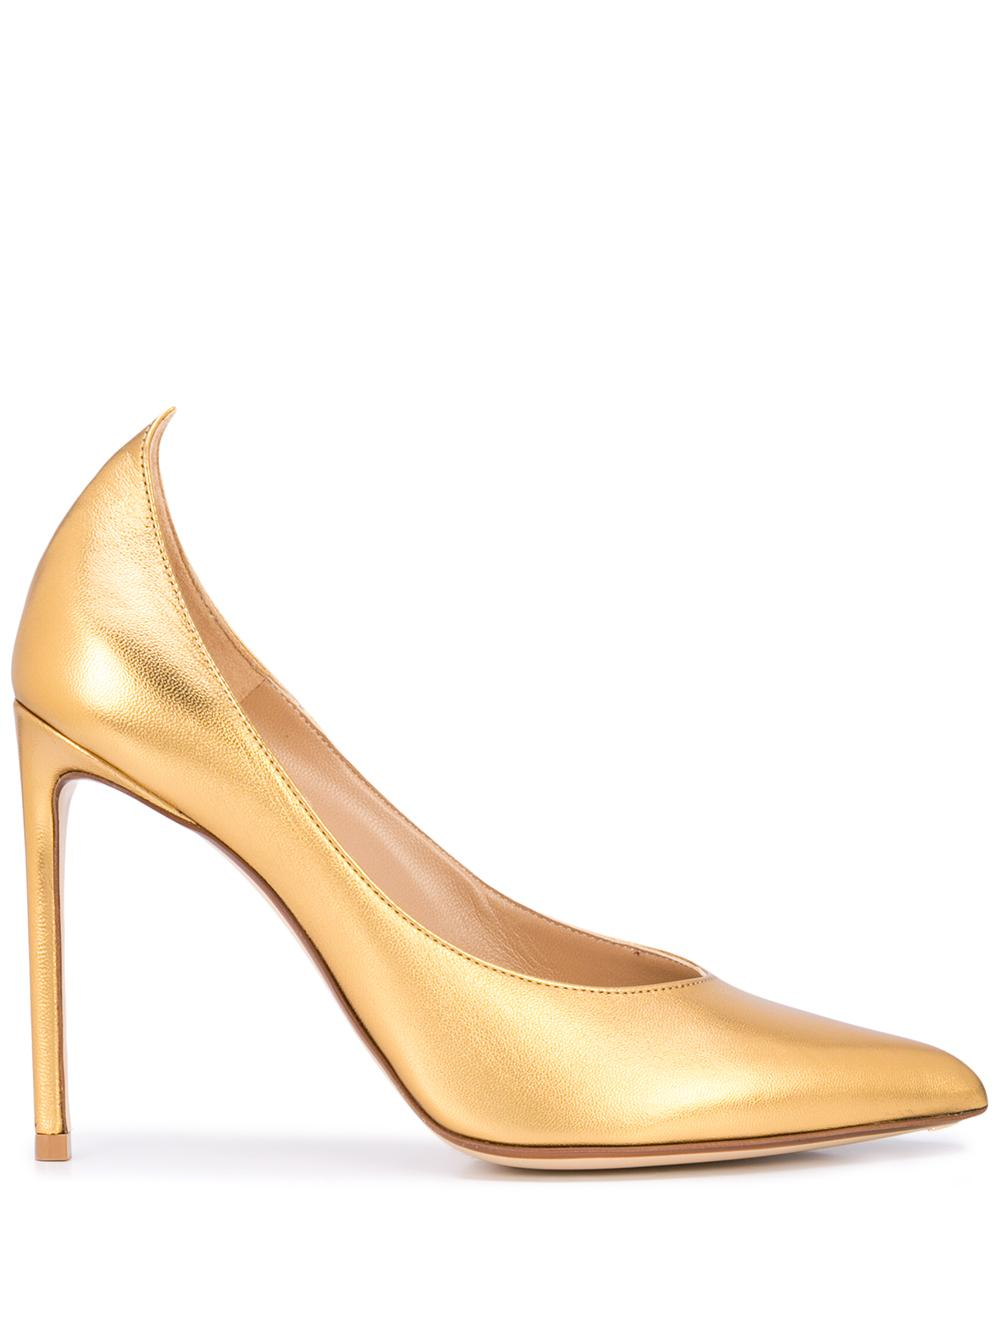 Laminated Leather 105mm Peak Heel Pump